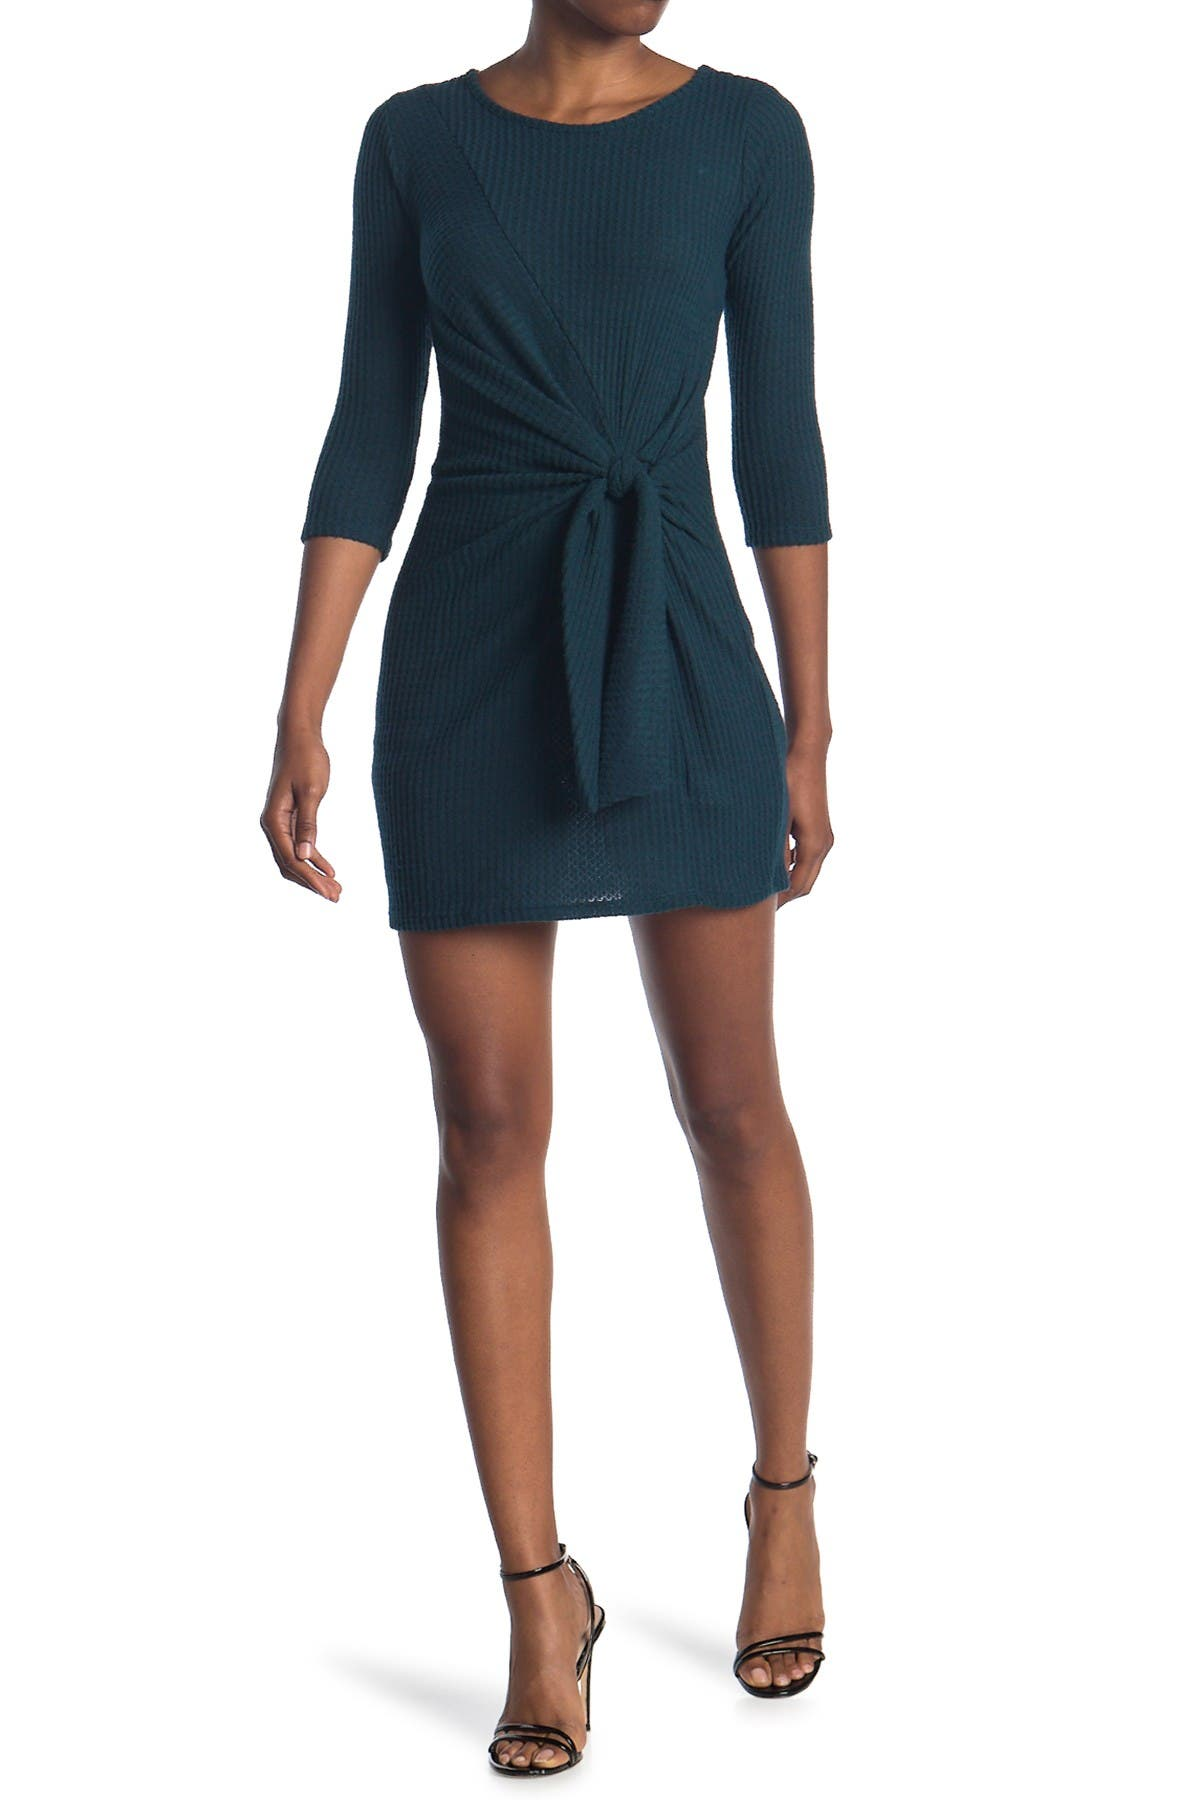 Image of BAILEY BLUE Knot Front Dress